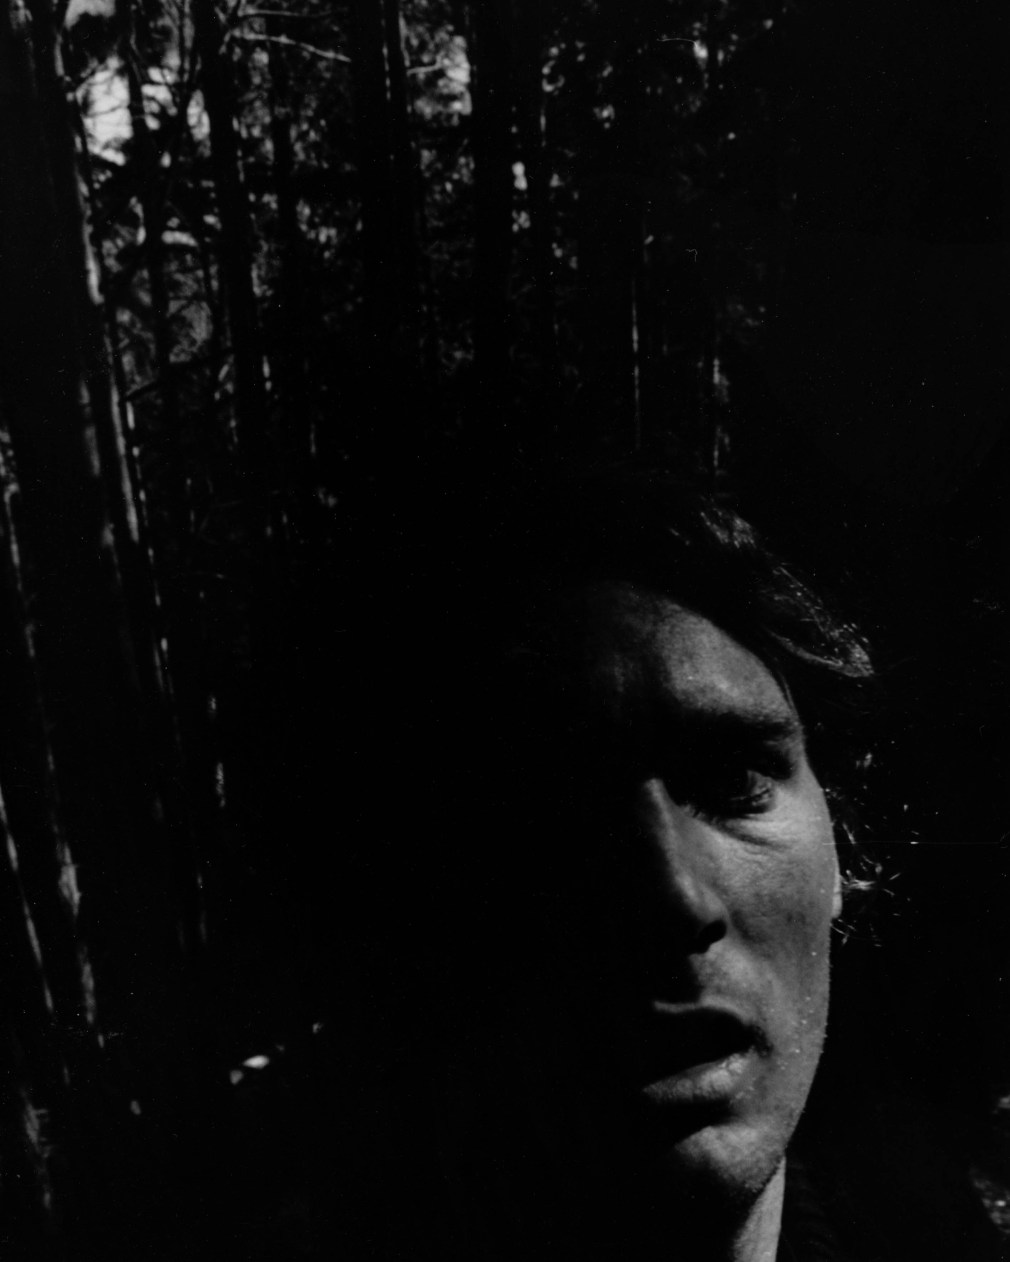 selfie, 1990s, film, black and white, print